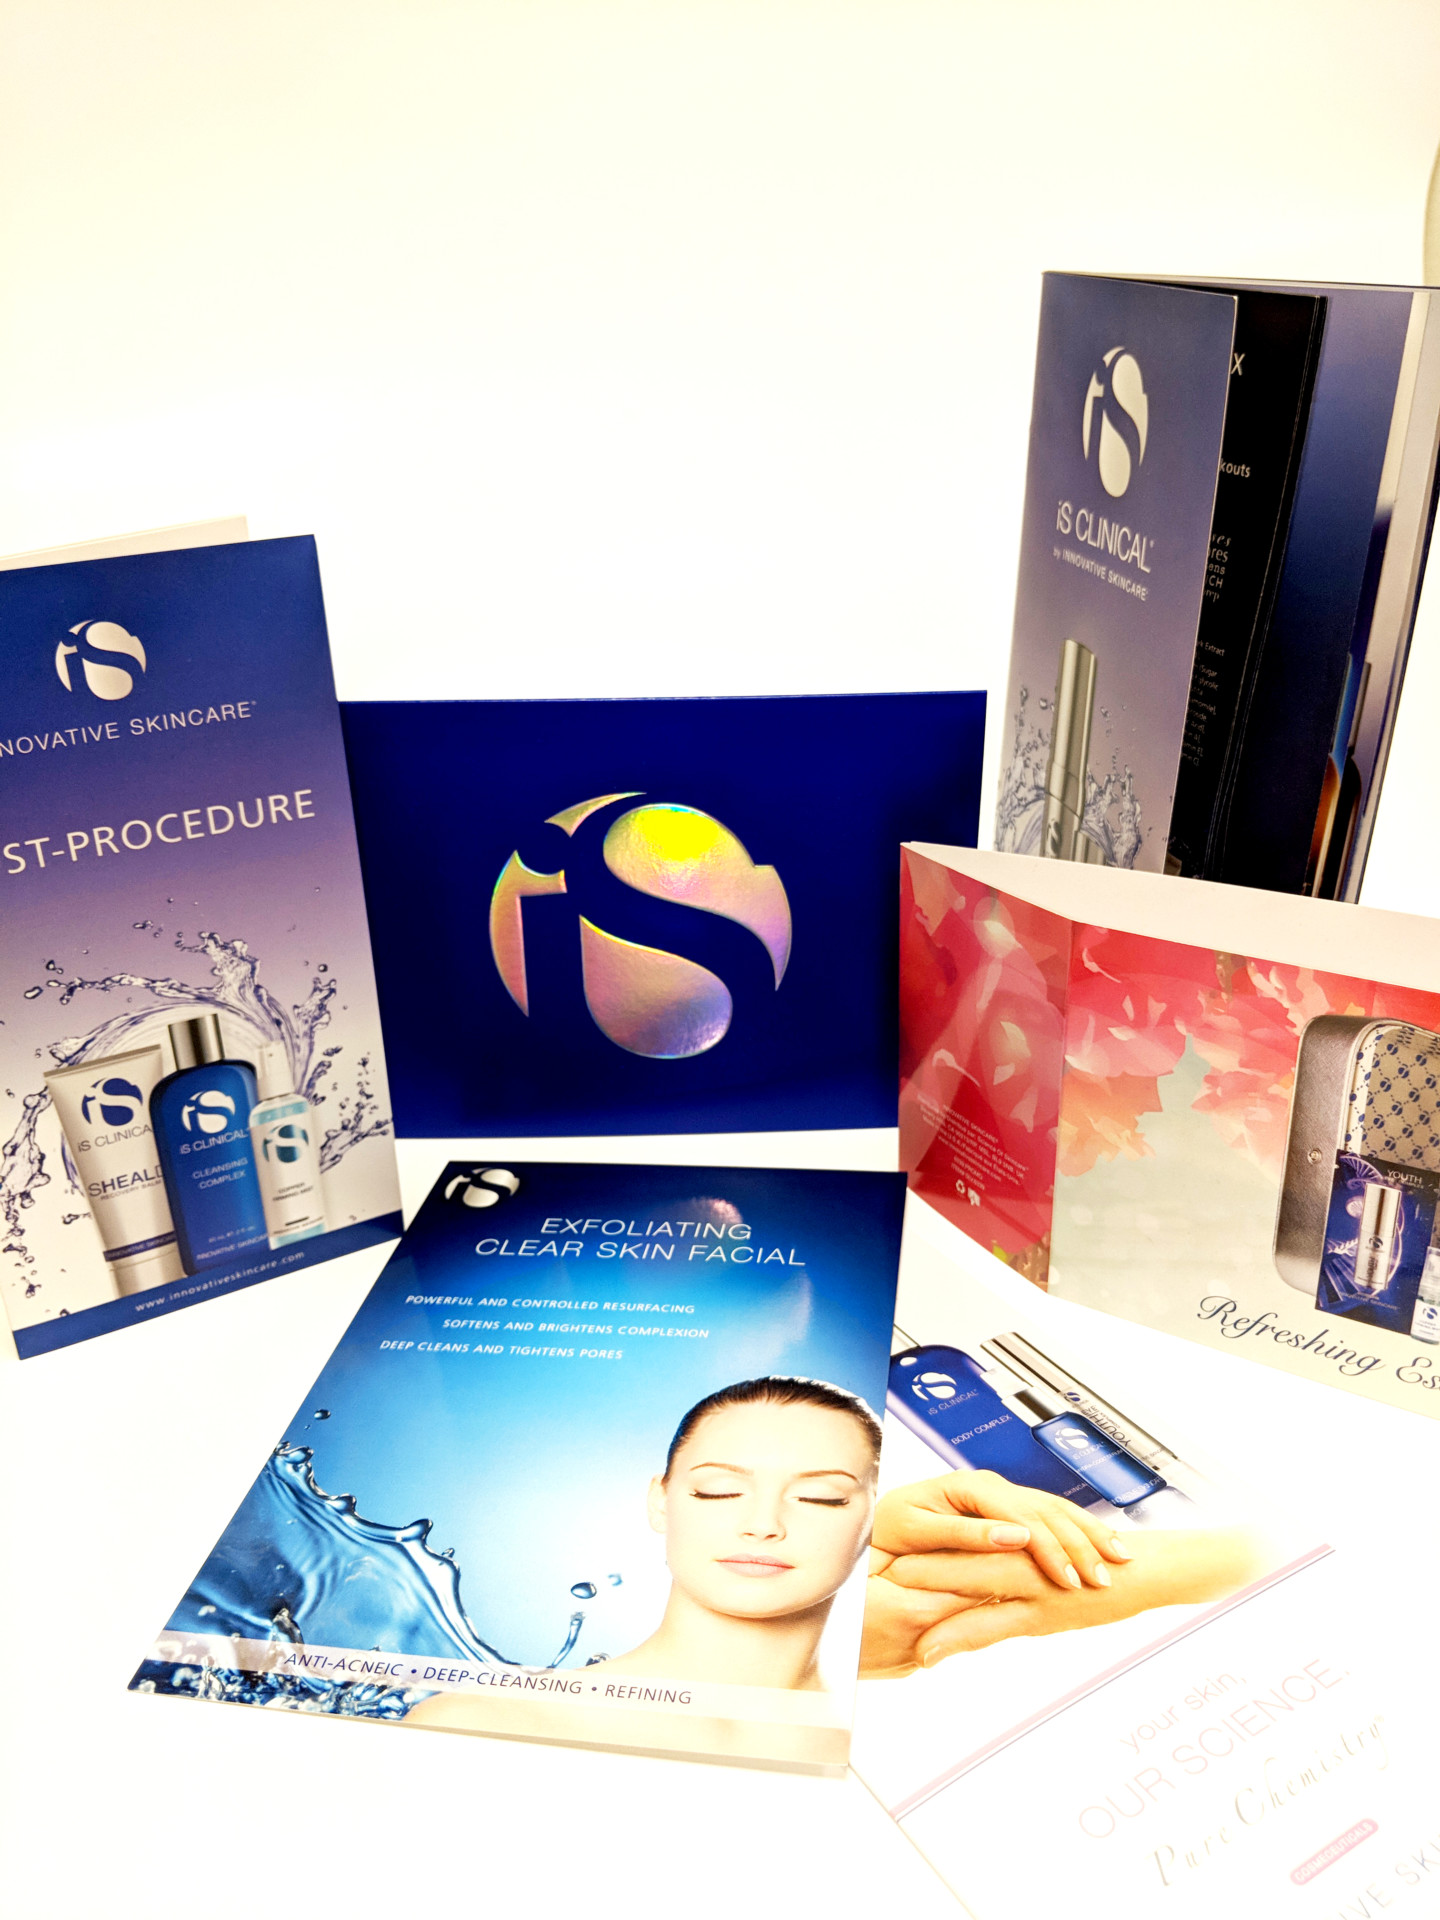 Coordinated Beauty Marketing & Product Collateral